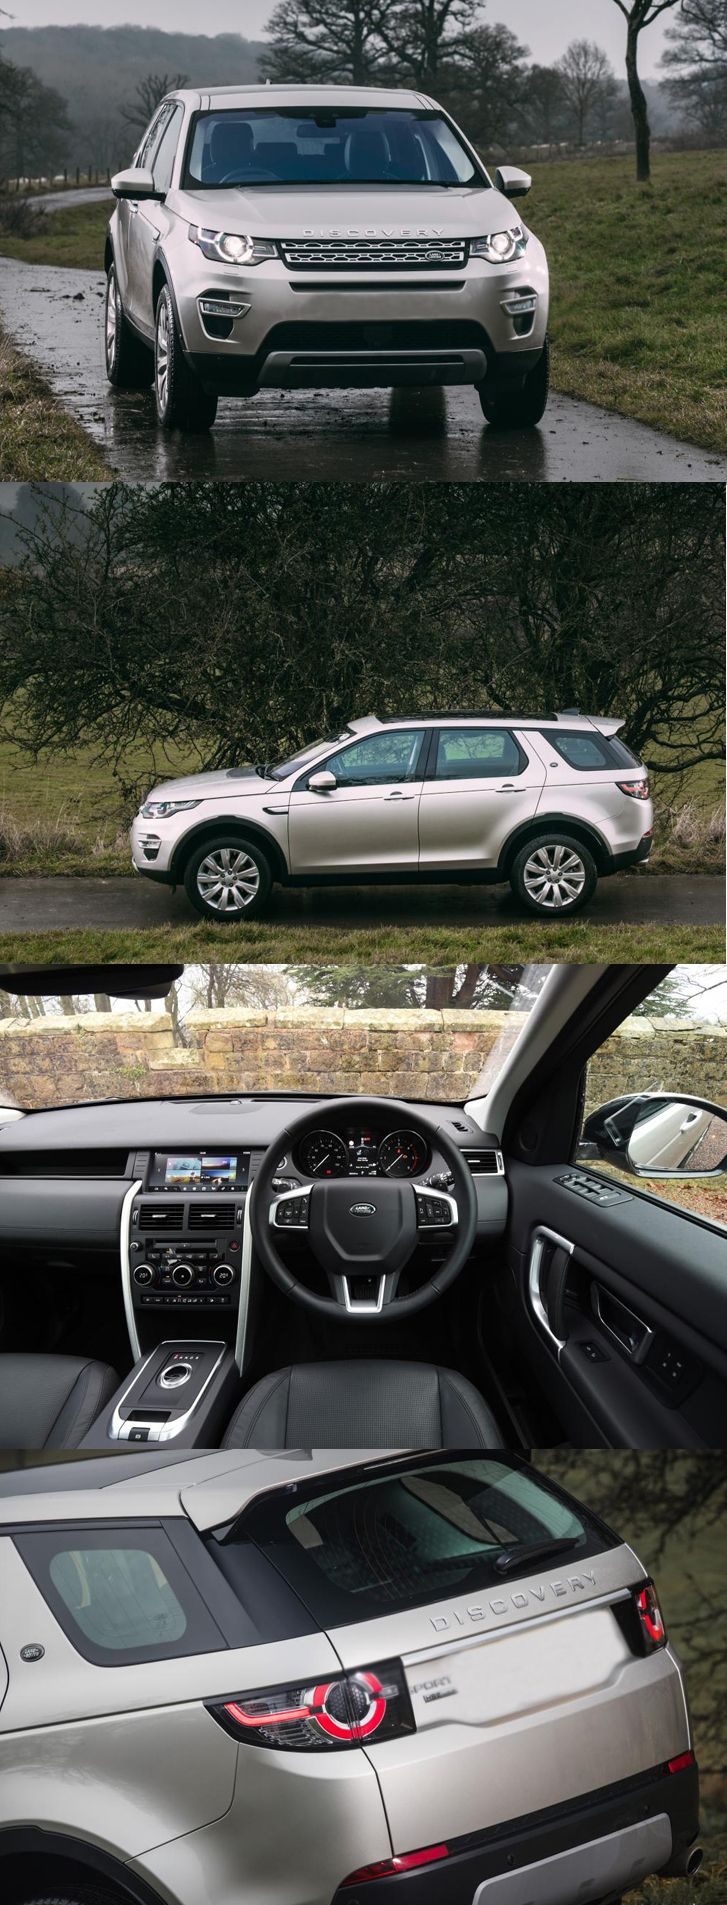 A Review of the 2017 New Land Rover Discovery Sport TD4 For more detail:https://www.rangerovergearbox.co.uk/blog/review-2017-new-land-rover-discovery-sport-td4/